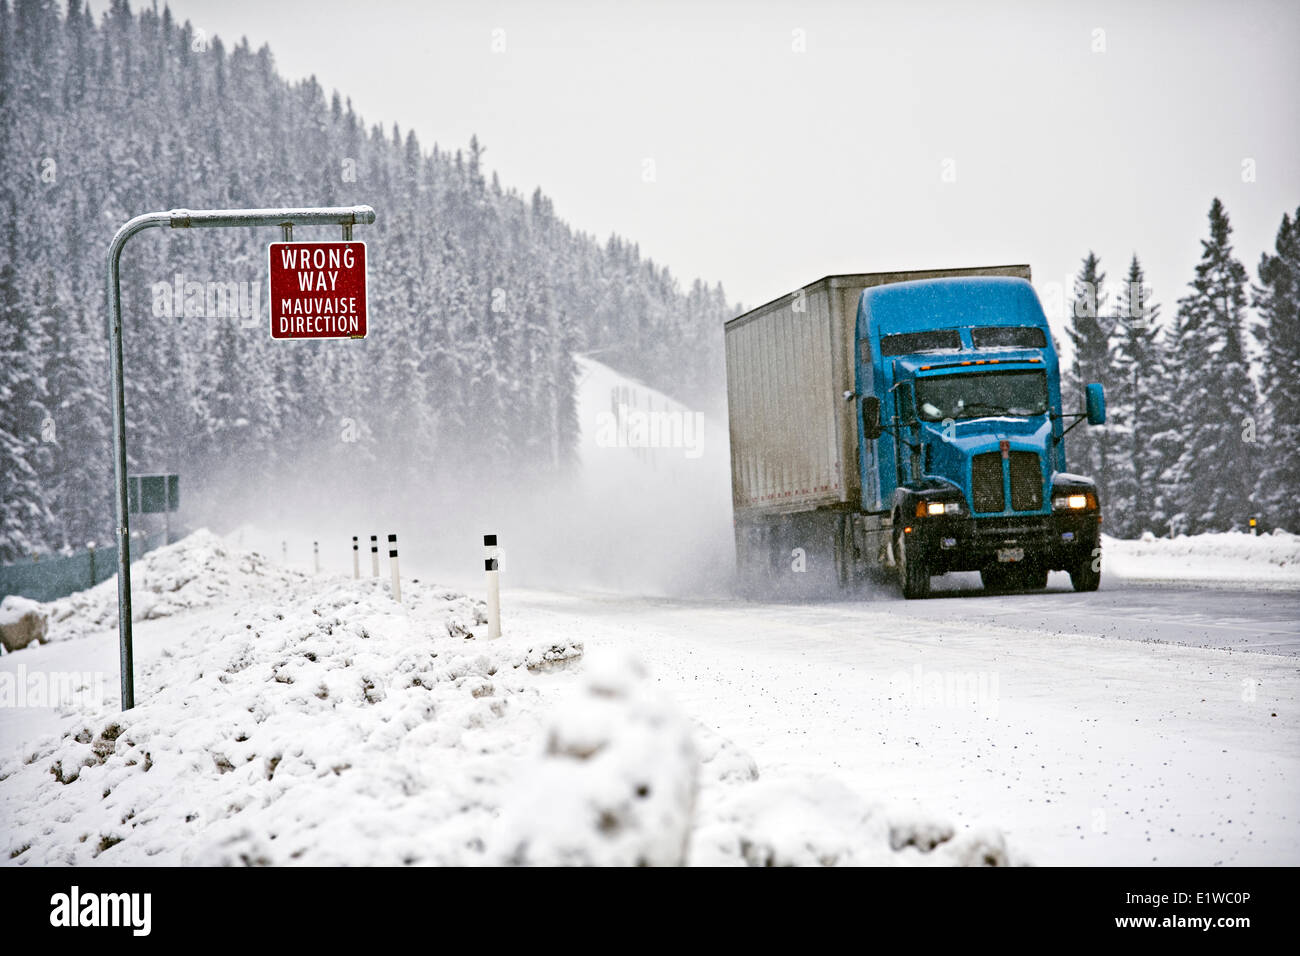 Wrong way sign and transport truck on Trans-Canada Highway in winter conditions near Lake Louise, Alberta, Canada. - Stock Image